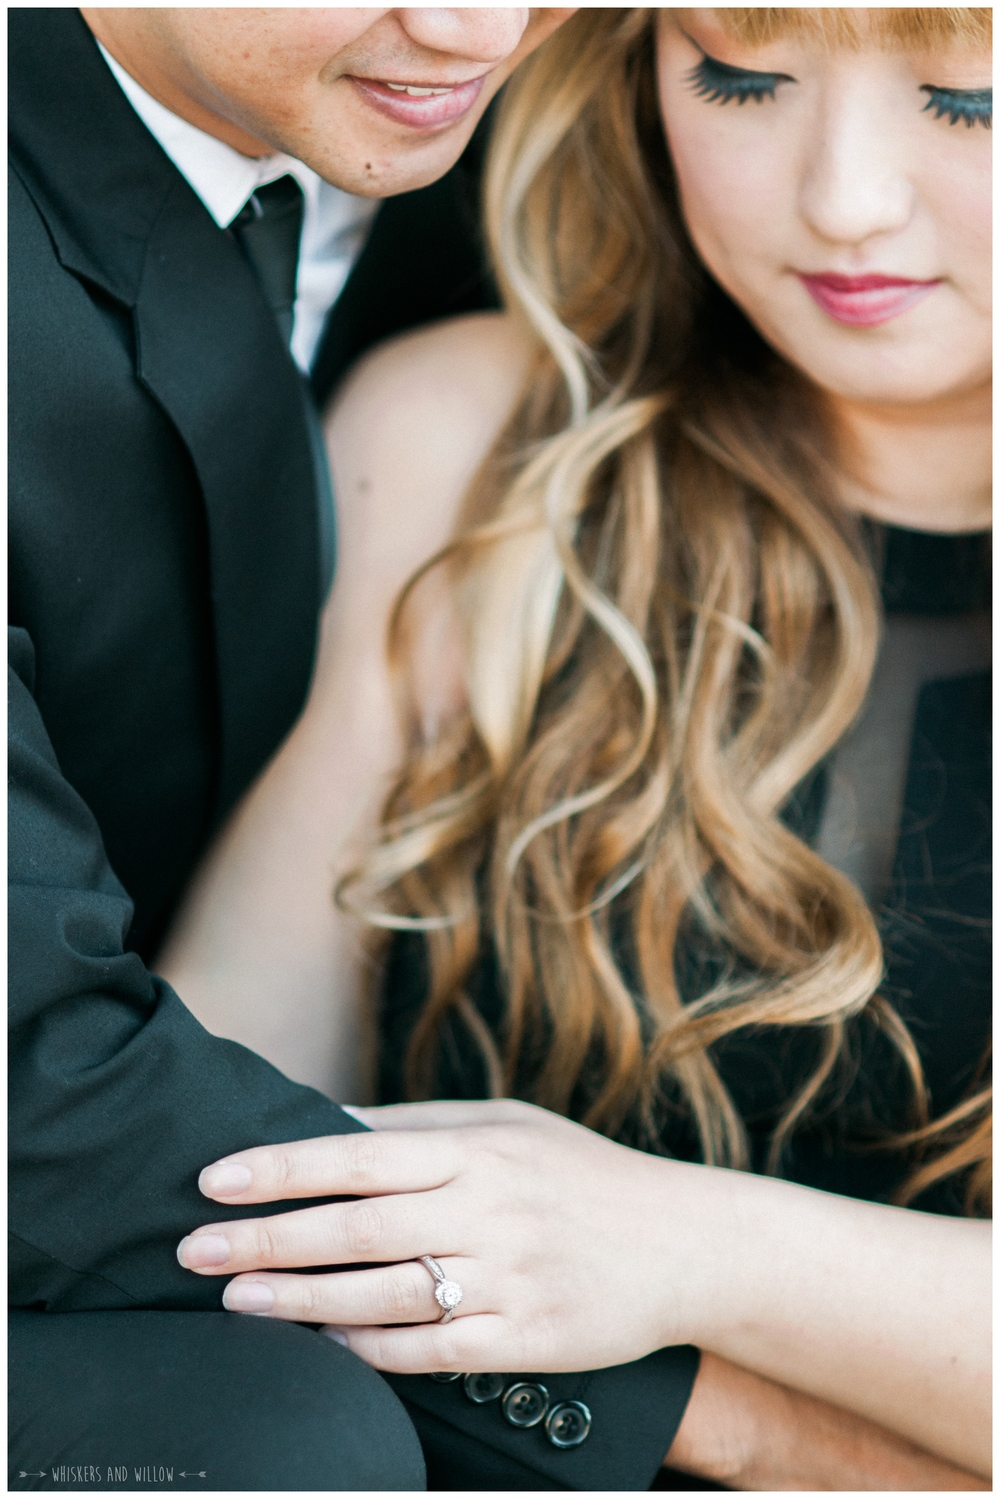 Balboa Park Engagement 015 | Whiskers and Willow Photography